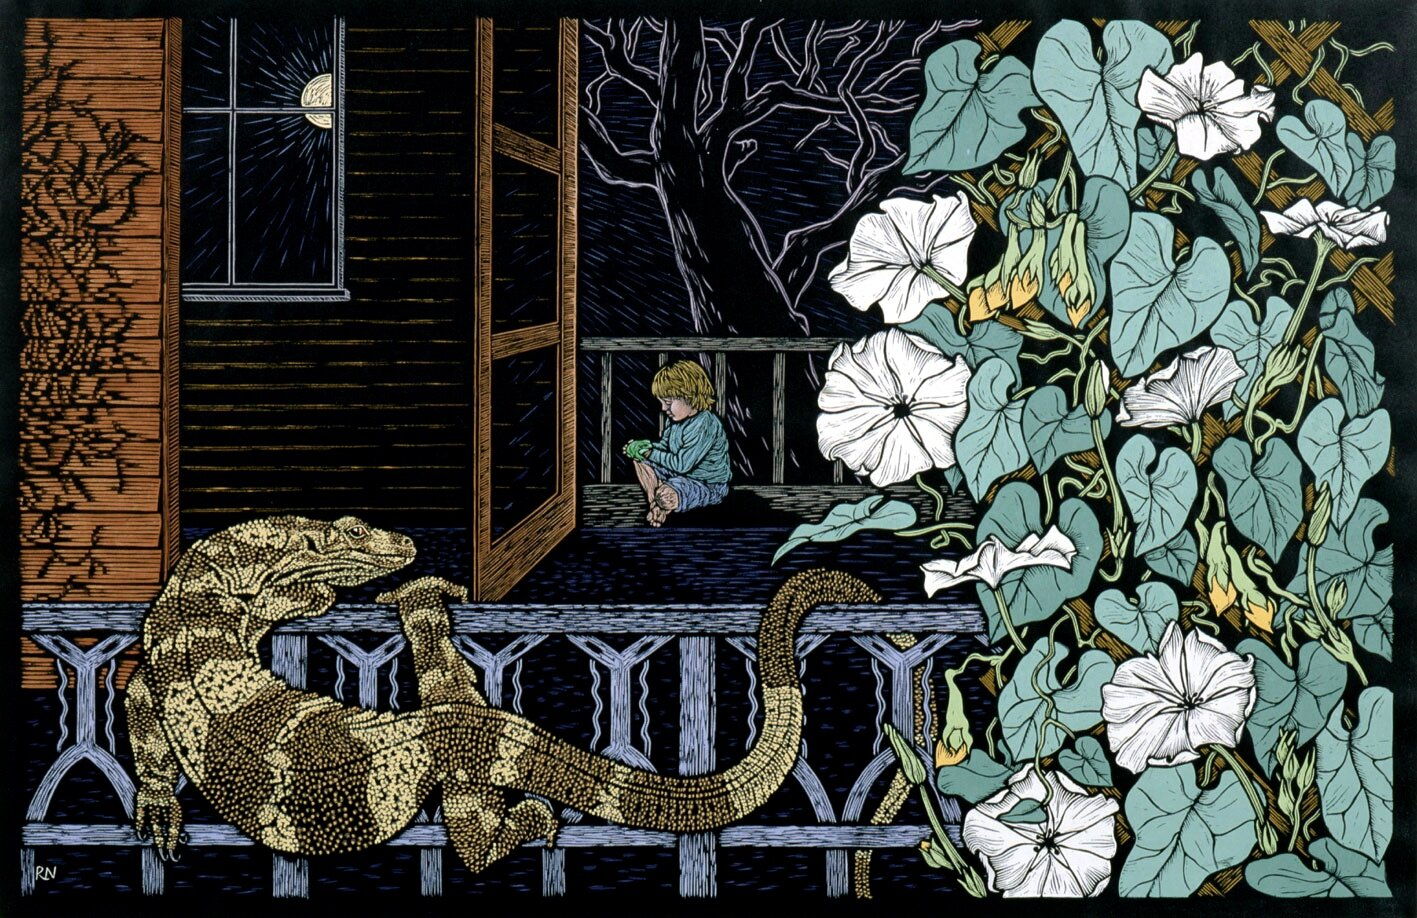 COMING HOME  86 X 55.5 CM, EDITION OF 50  HAND-COLOURED LINOCUT ON HANDMADE JAPANESE PAPER  $1,700